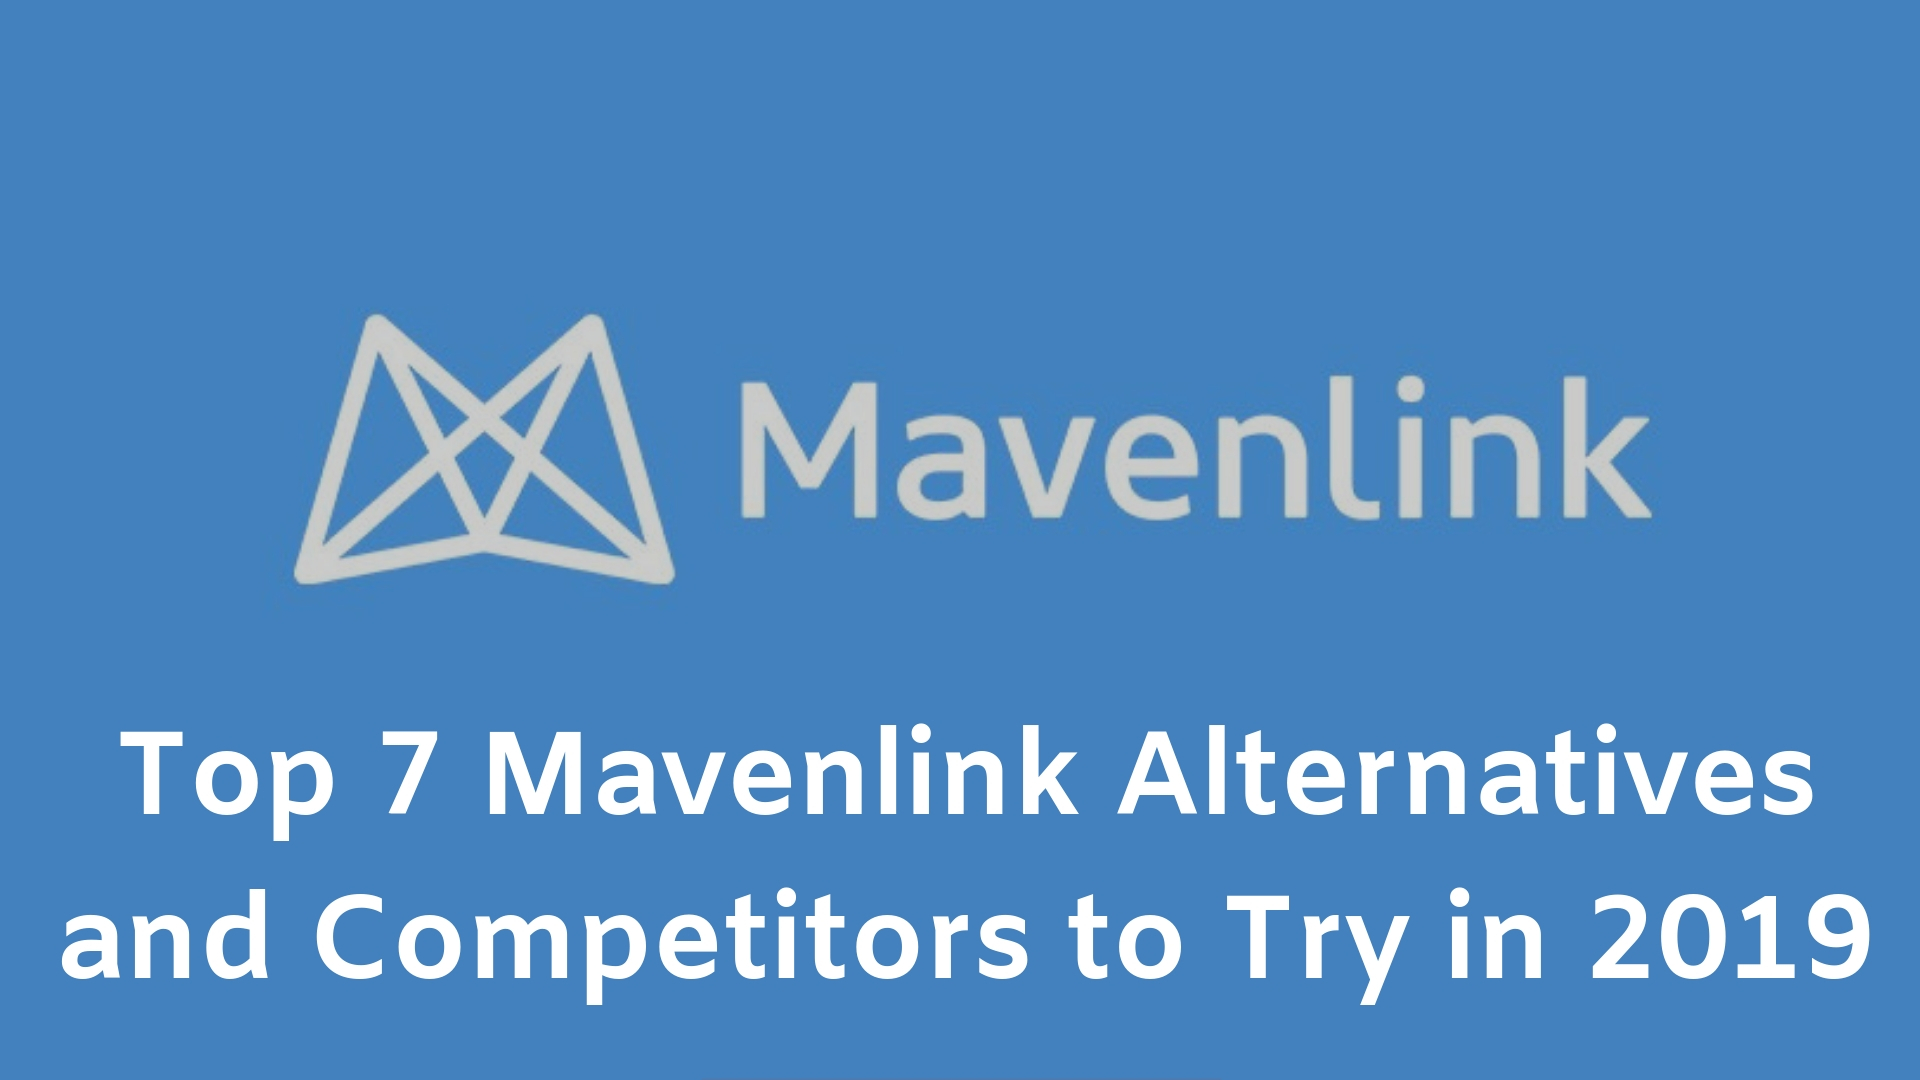 Mavenlink alternatives